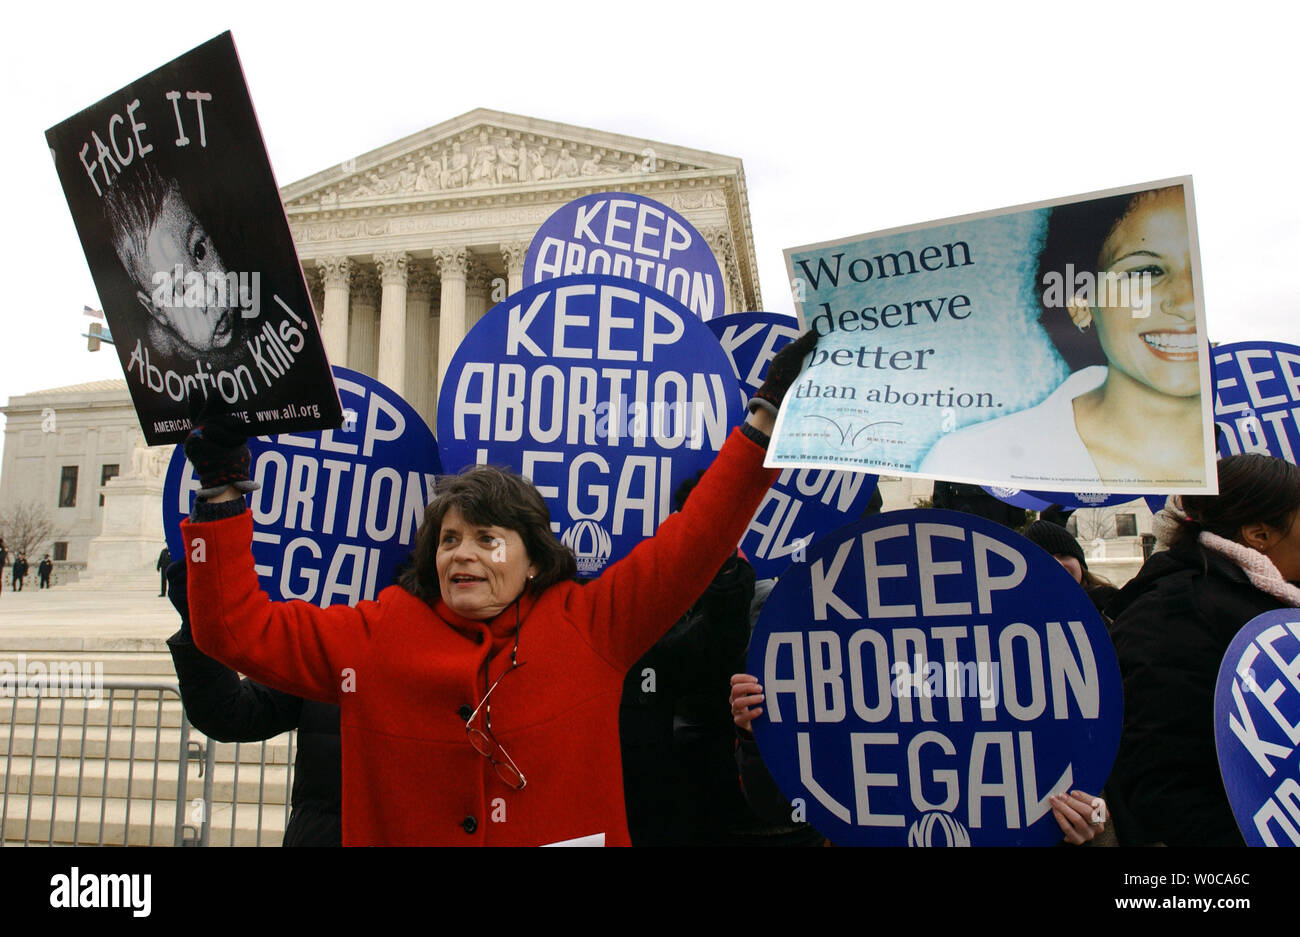 Elaine Hanger, of Chesterfield, Va., tries to block pro-choice signs with her own anti-abortion signs during a protest march on January 22, 2004, in Washington. This is the 31st annual march held on the anniversary of the Supreme Court decision Roe vs. Wade which legalized abortions across the U.S.   (UPI Photo/Roger L. Wollenberg) Stock Photo